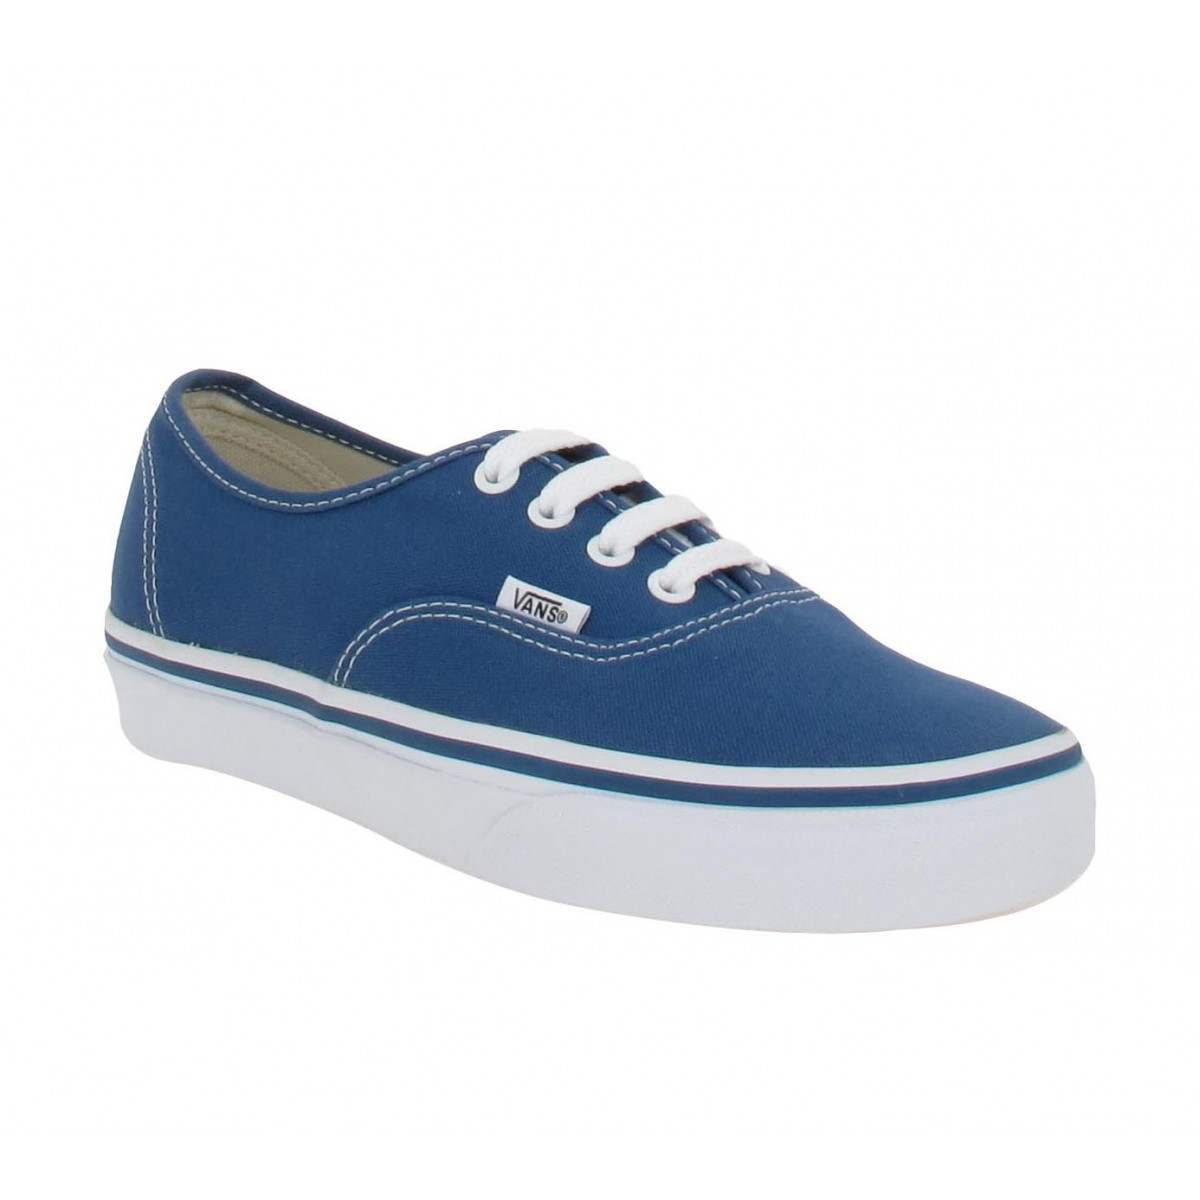 Baskets VANS Authentic toile Femme Marine